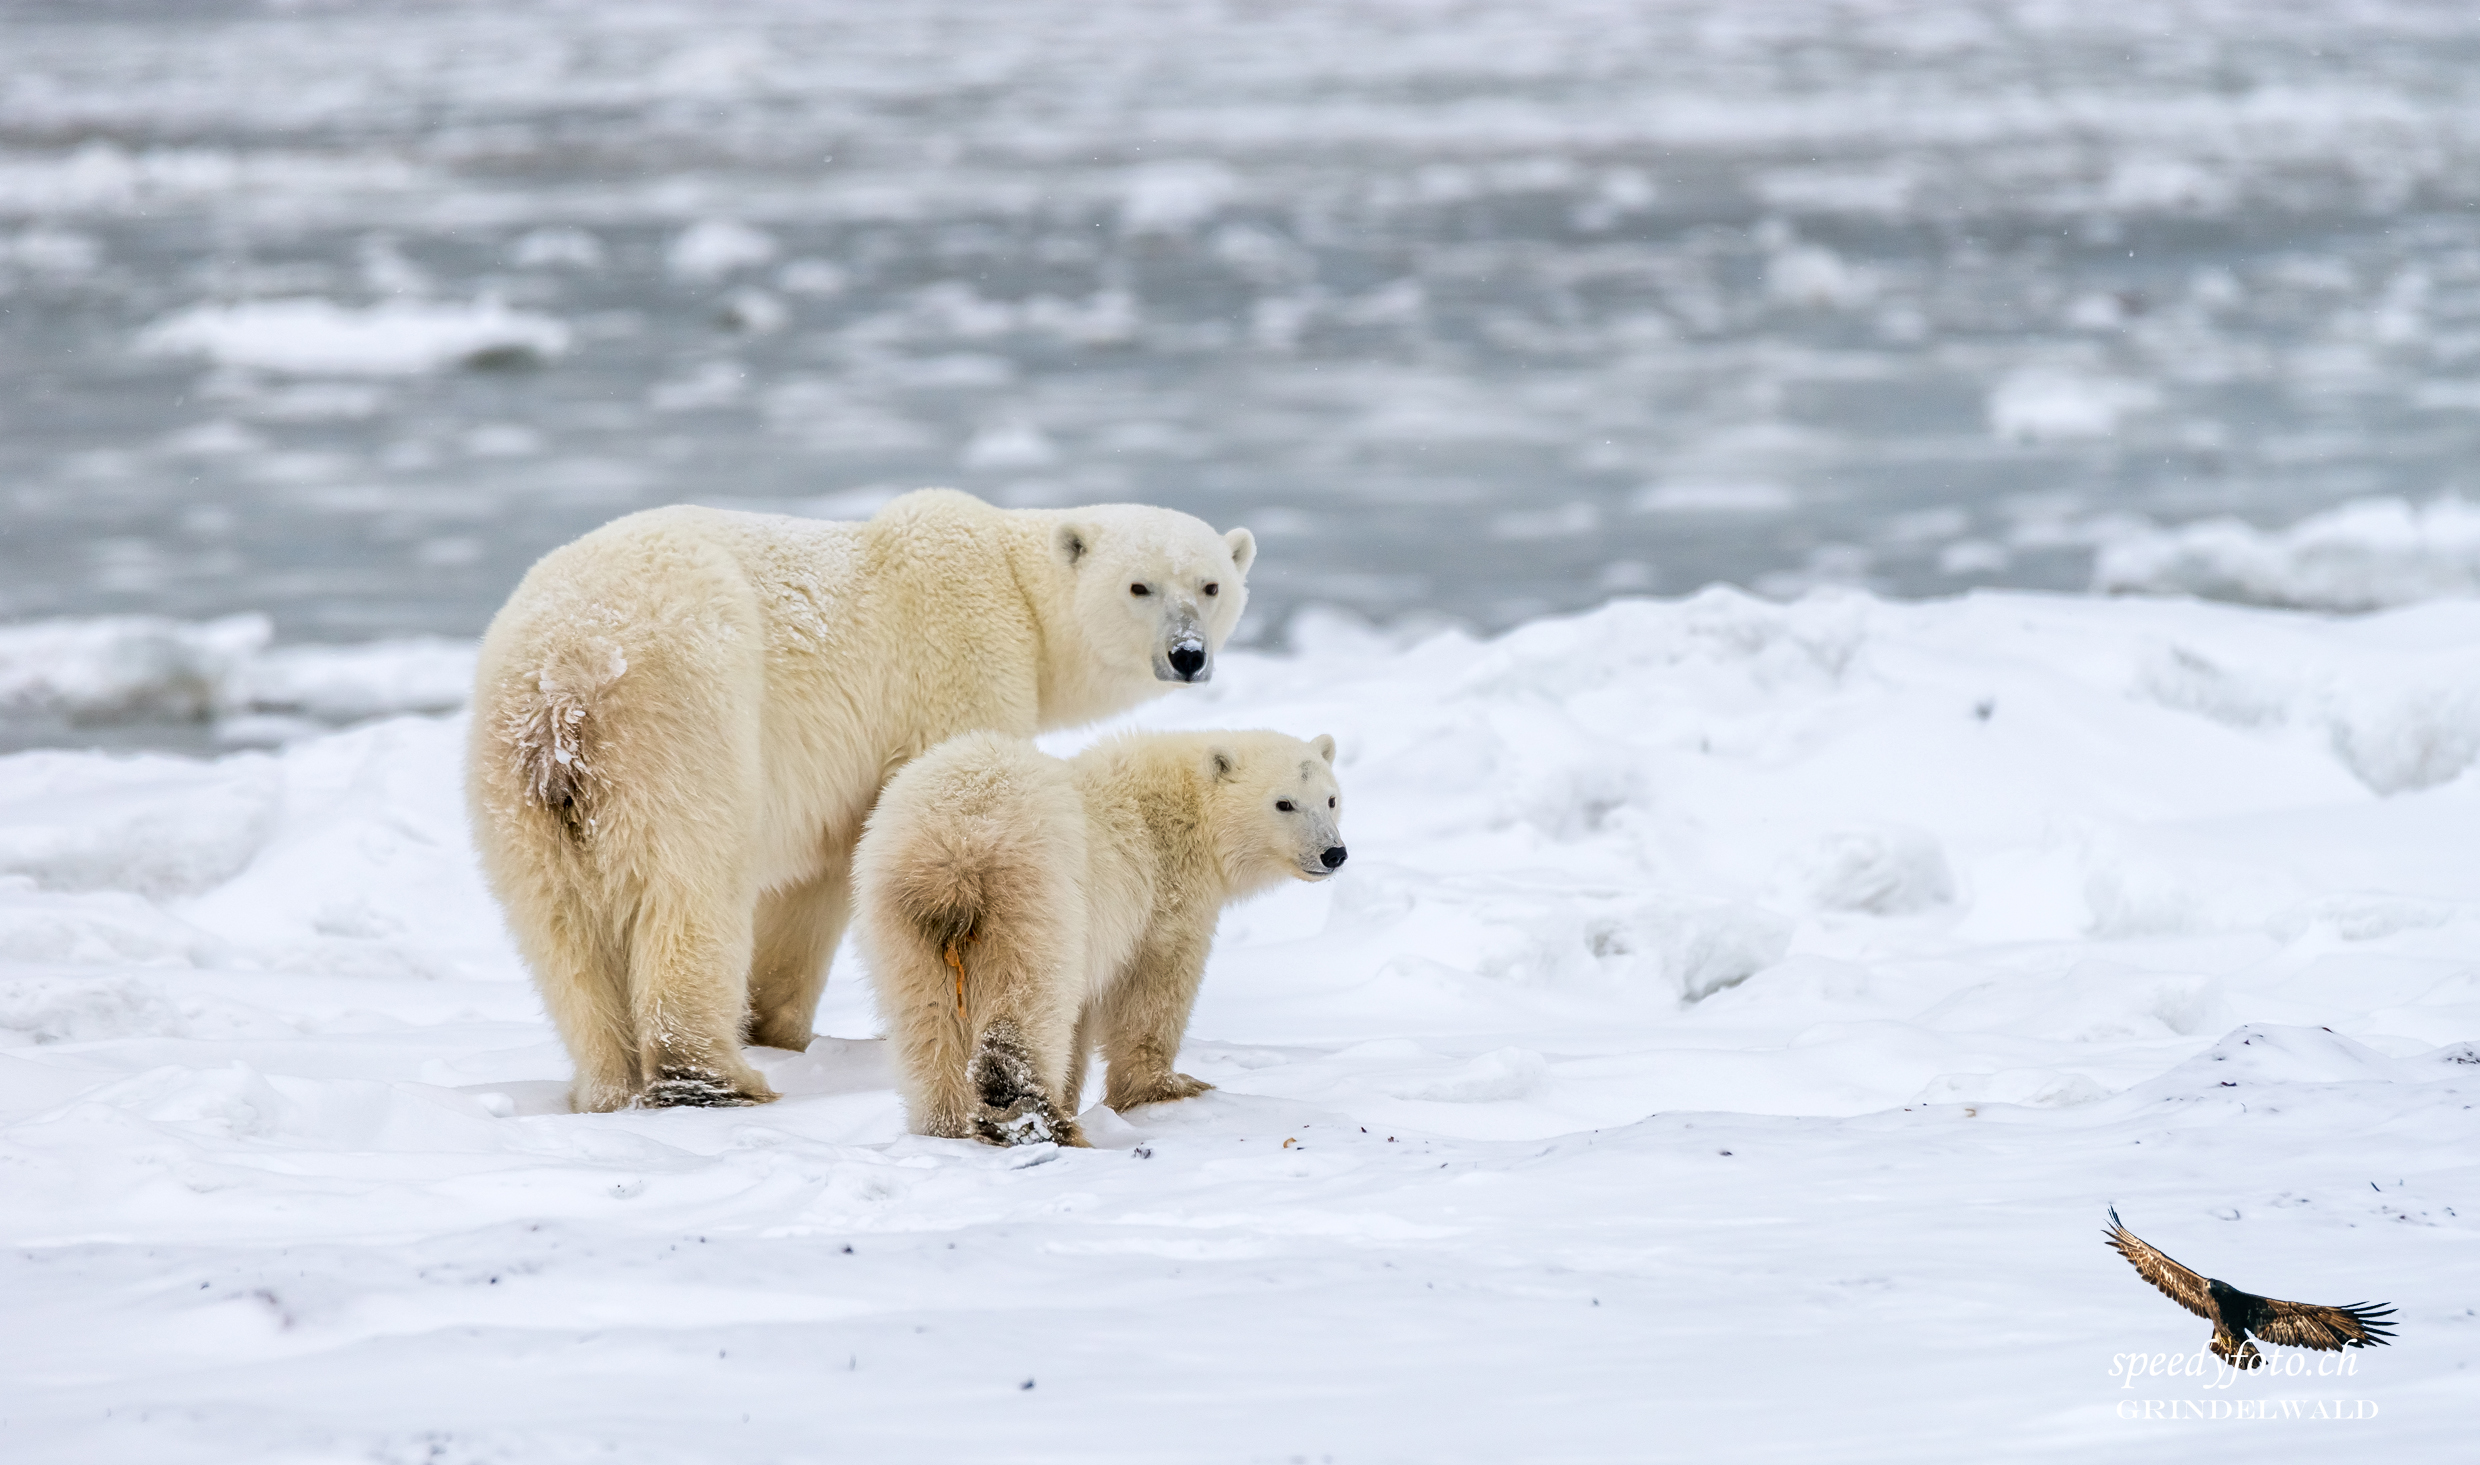 Let's go - dont worry - Arctic Canada